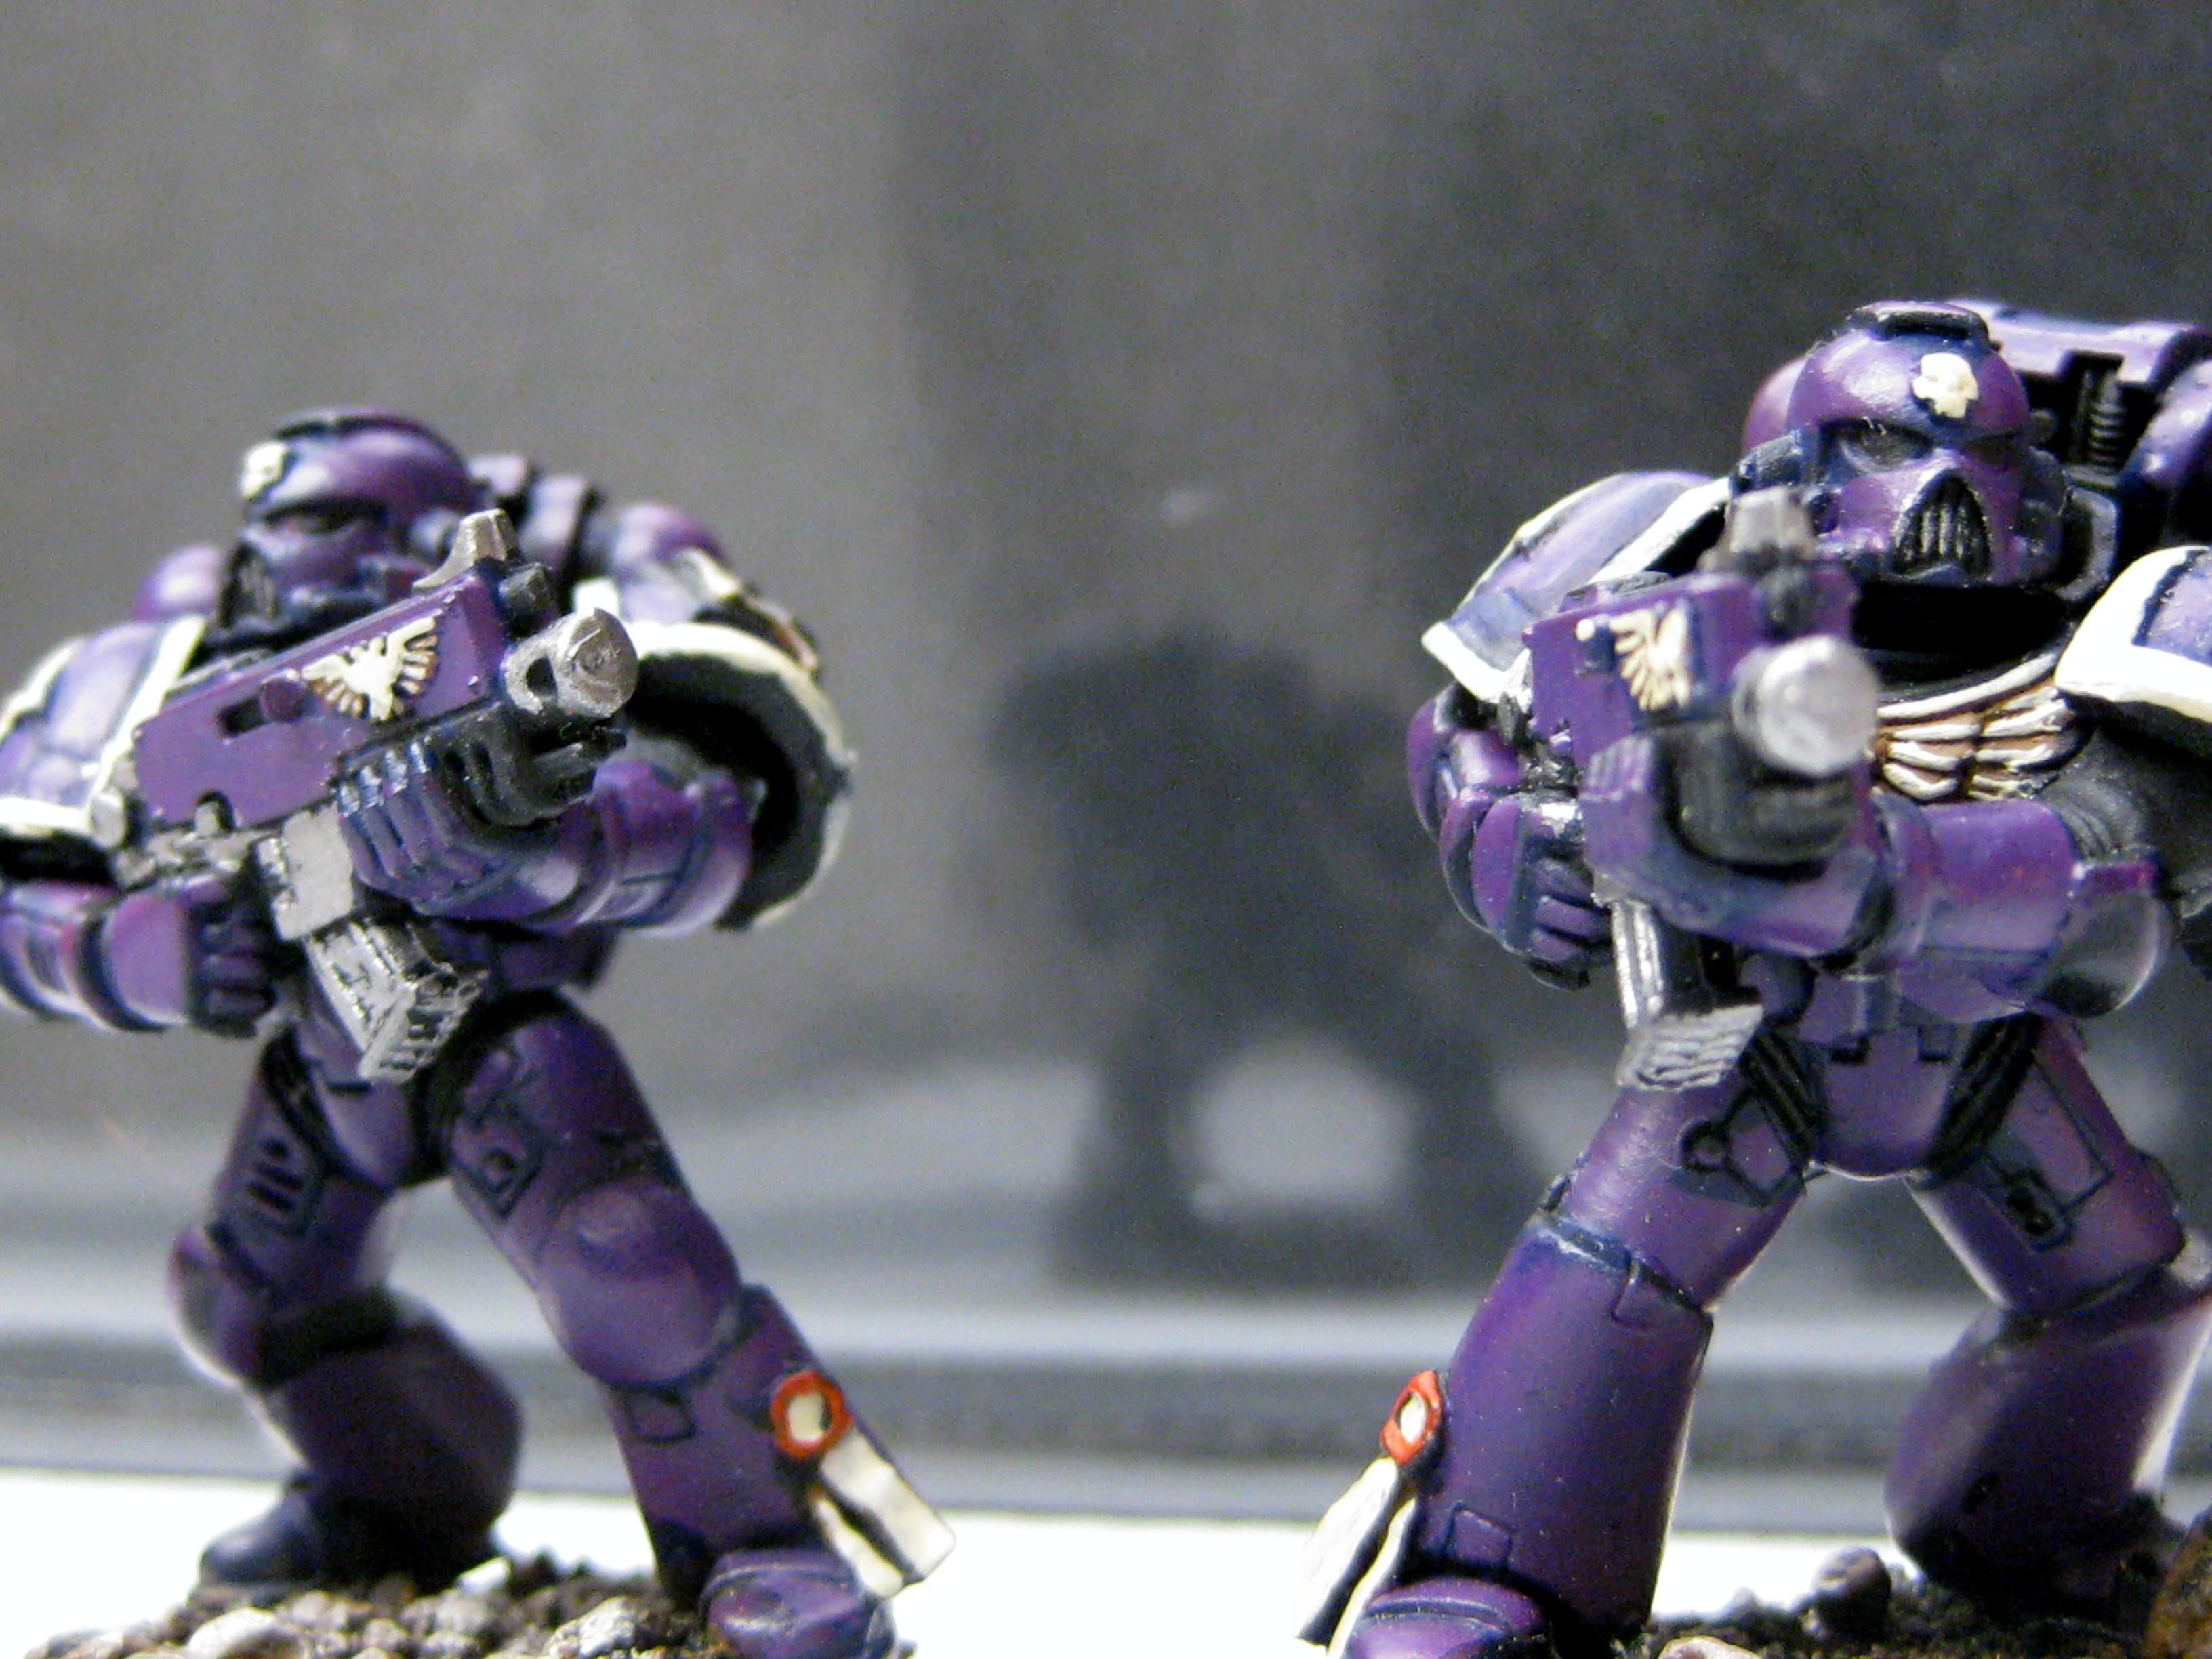 Space Marines, Tactical Marines